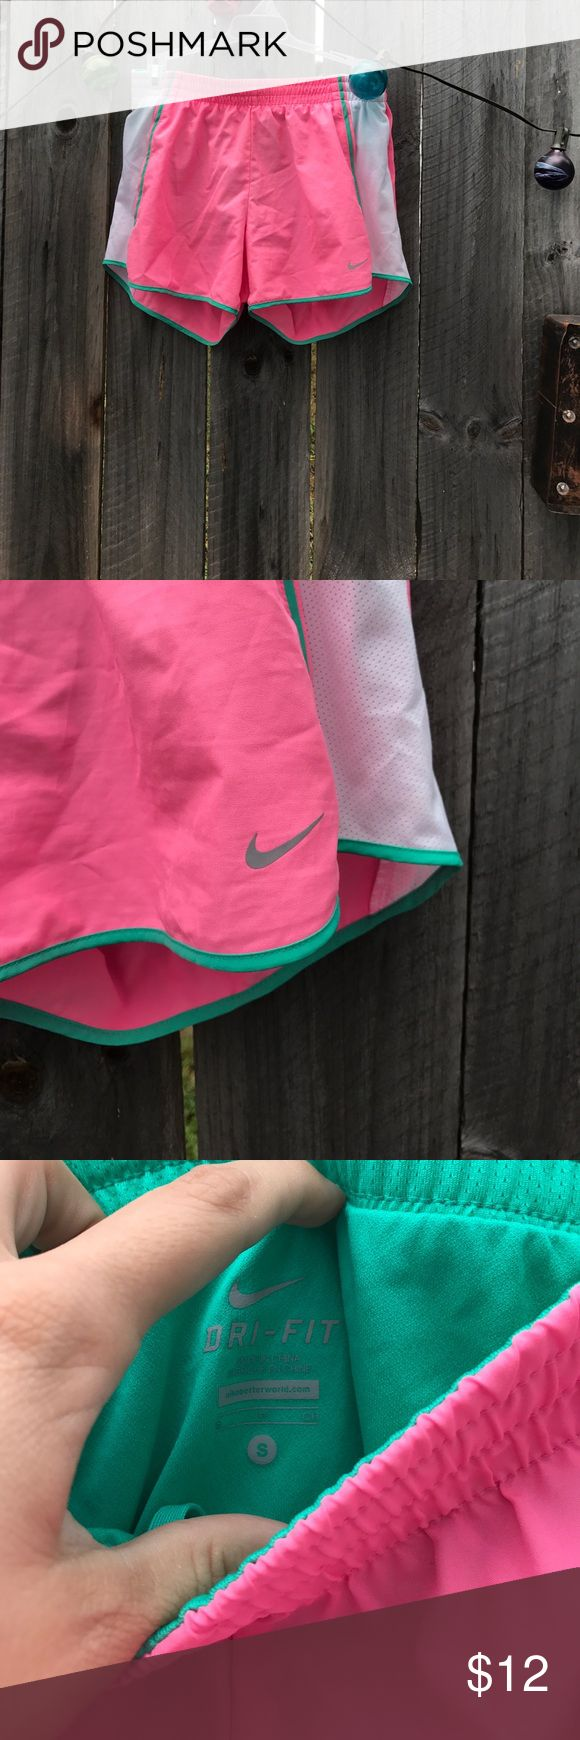 Nike dri fit shorts Pink white and green Nike dri fit shorts. Great condition no rips tears stains. Size small. Two small stash pockets inside. Pet friendly smoke free home. Nike Shorts